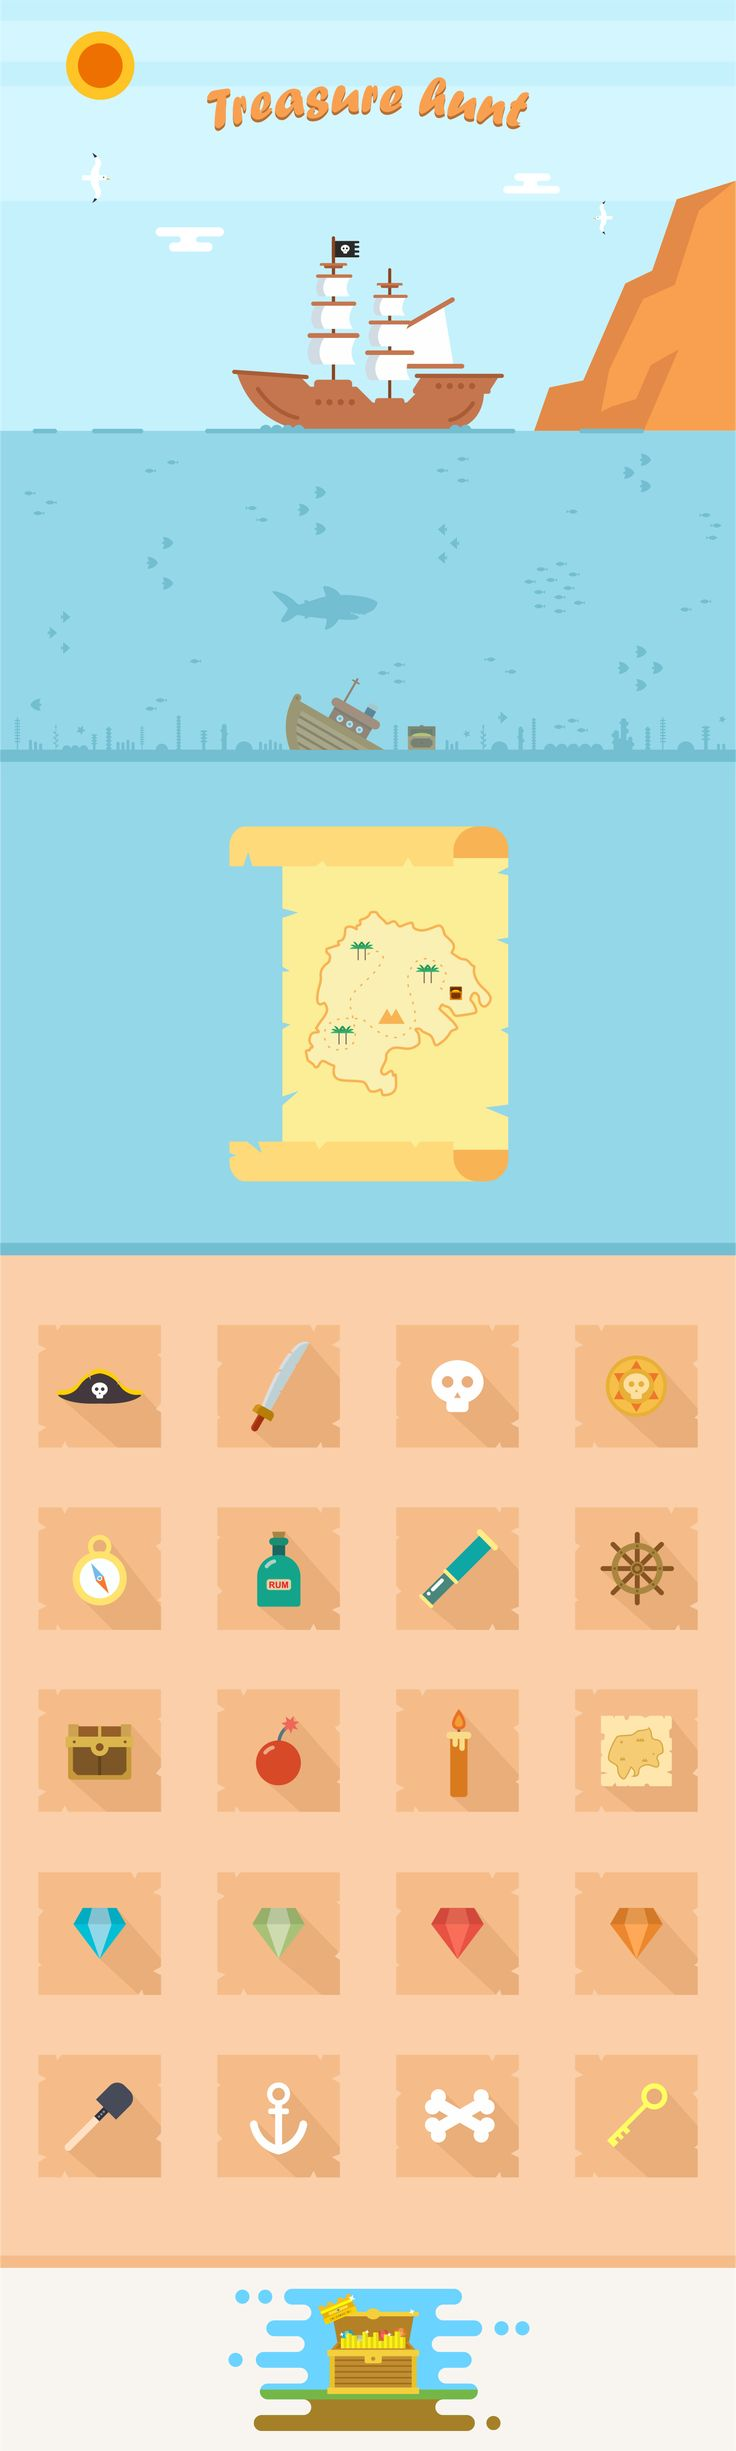 """Check out this @Behance project: """"Treasure hunt"""" https://www.behance.net/gallery/33164695/Treasure-hunt"""